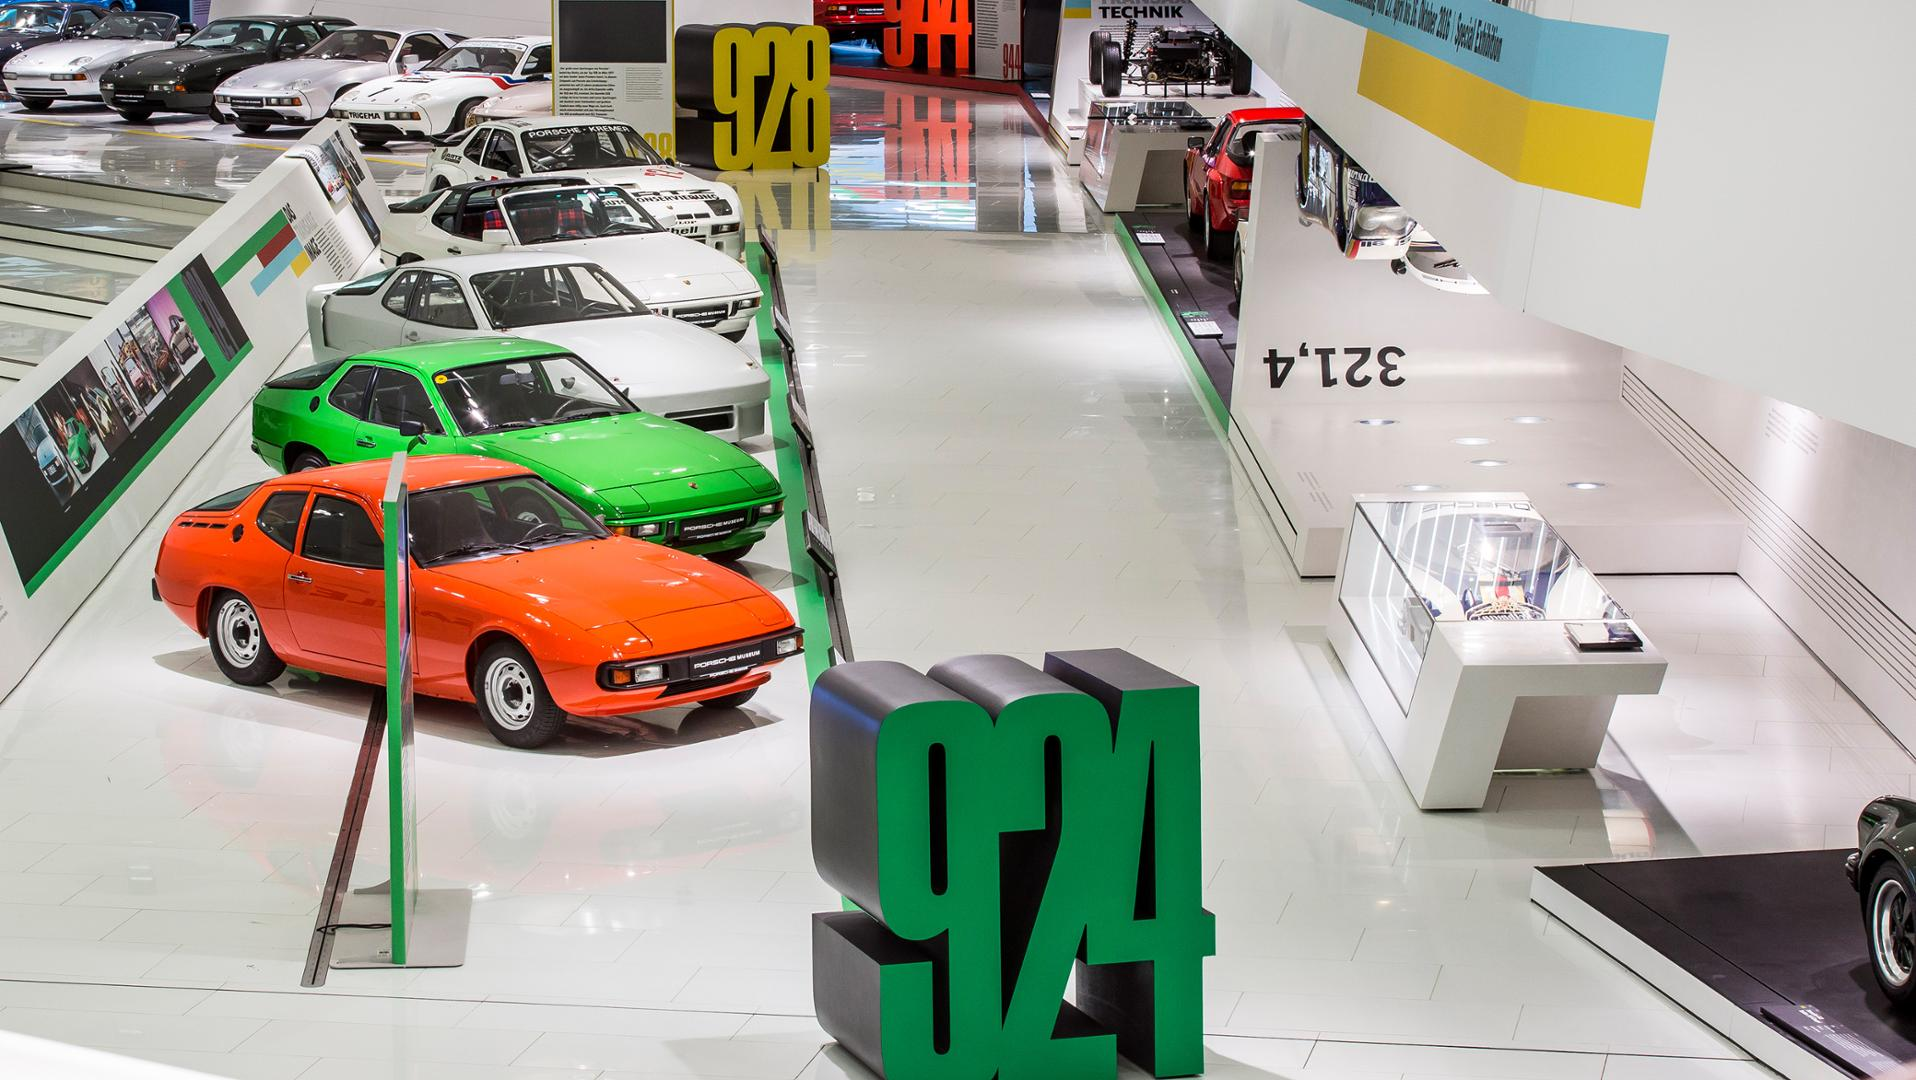 Heritage photo - Porsche Museum - 924 family